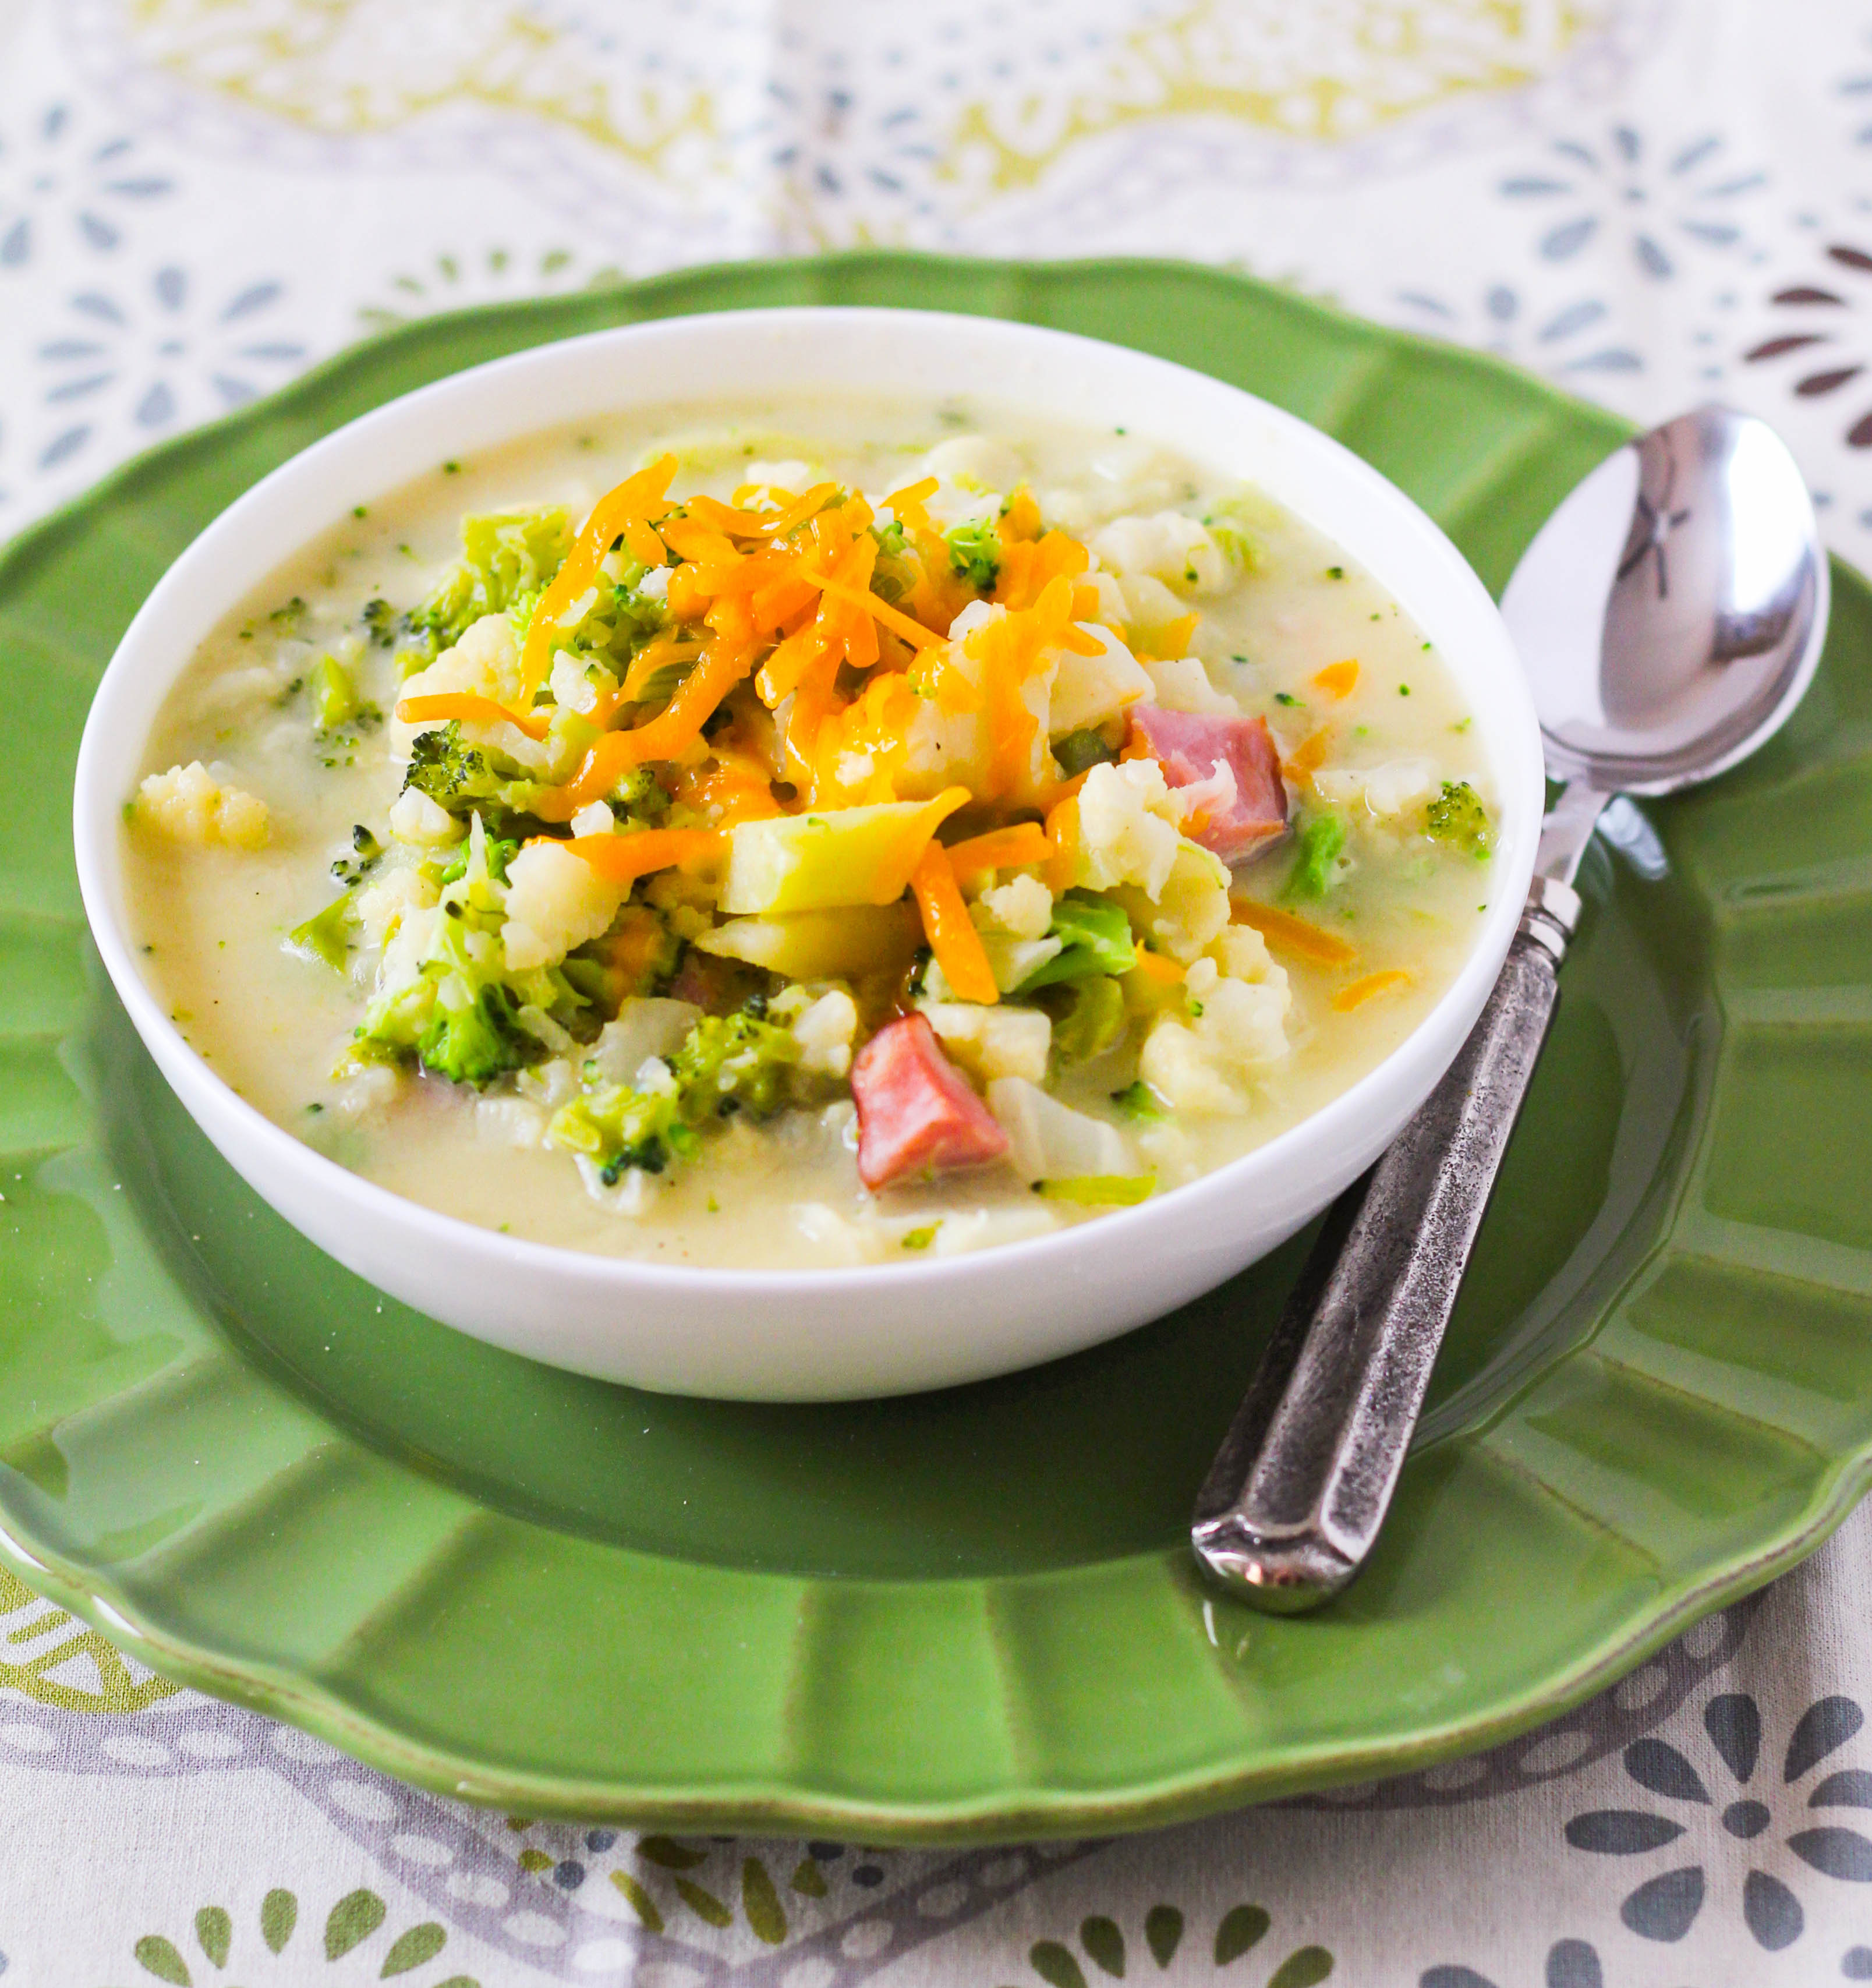 Chunky potato soup packed full of cauliflower, broccoli and ham. This Potato, Cauliflower and Ham soup whips up in 30 minutes or less-- including time it takes to wash and chop all of the vegetables. A warm bowl of comfort for chilly nights ahead.